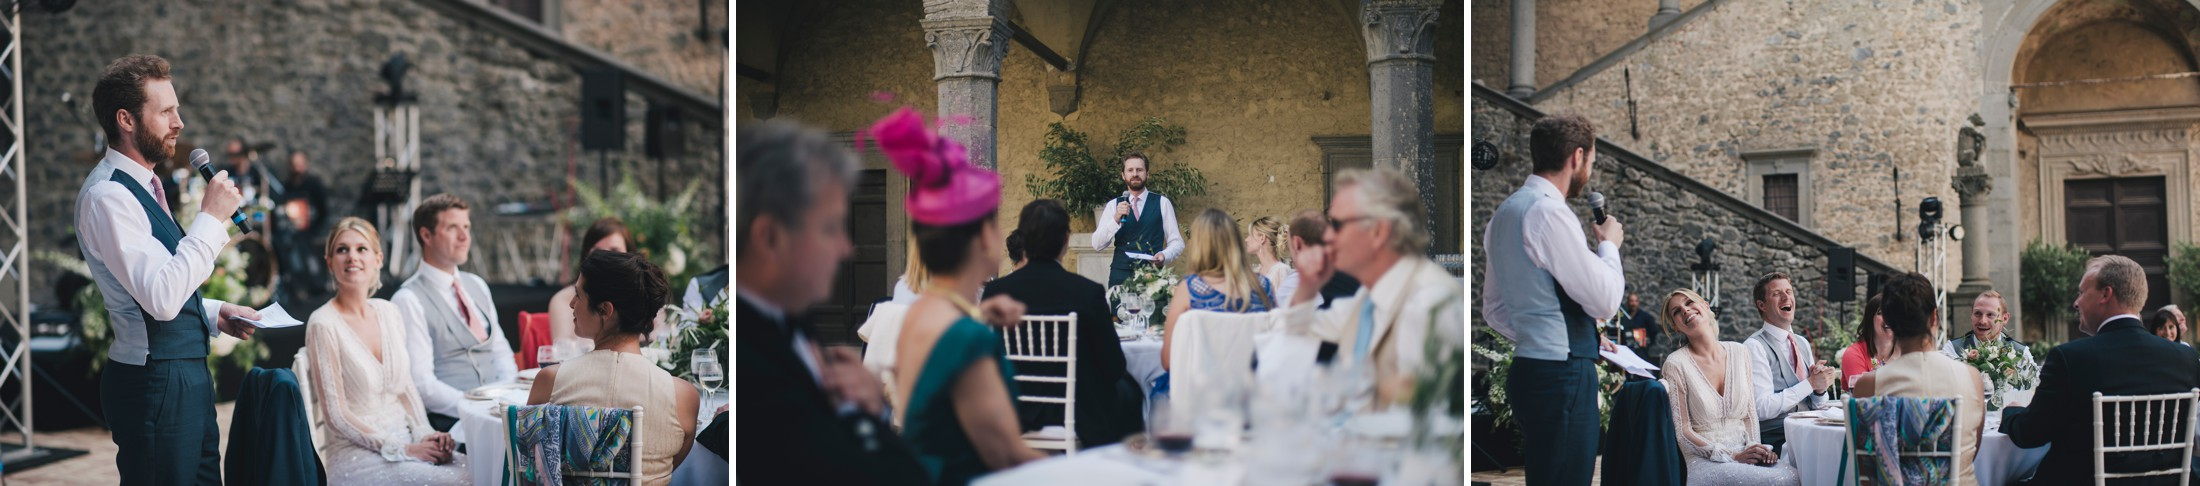 wedding in rome speeches